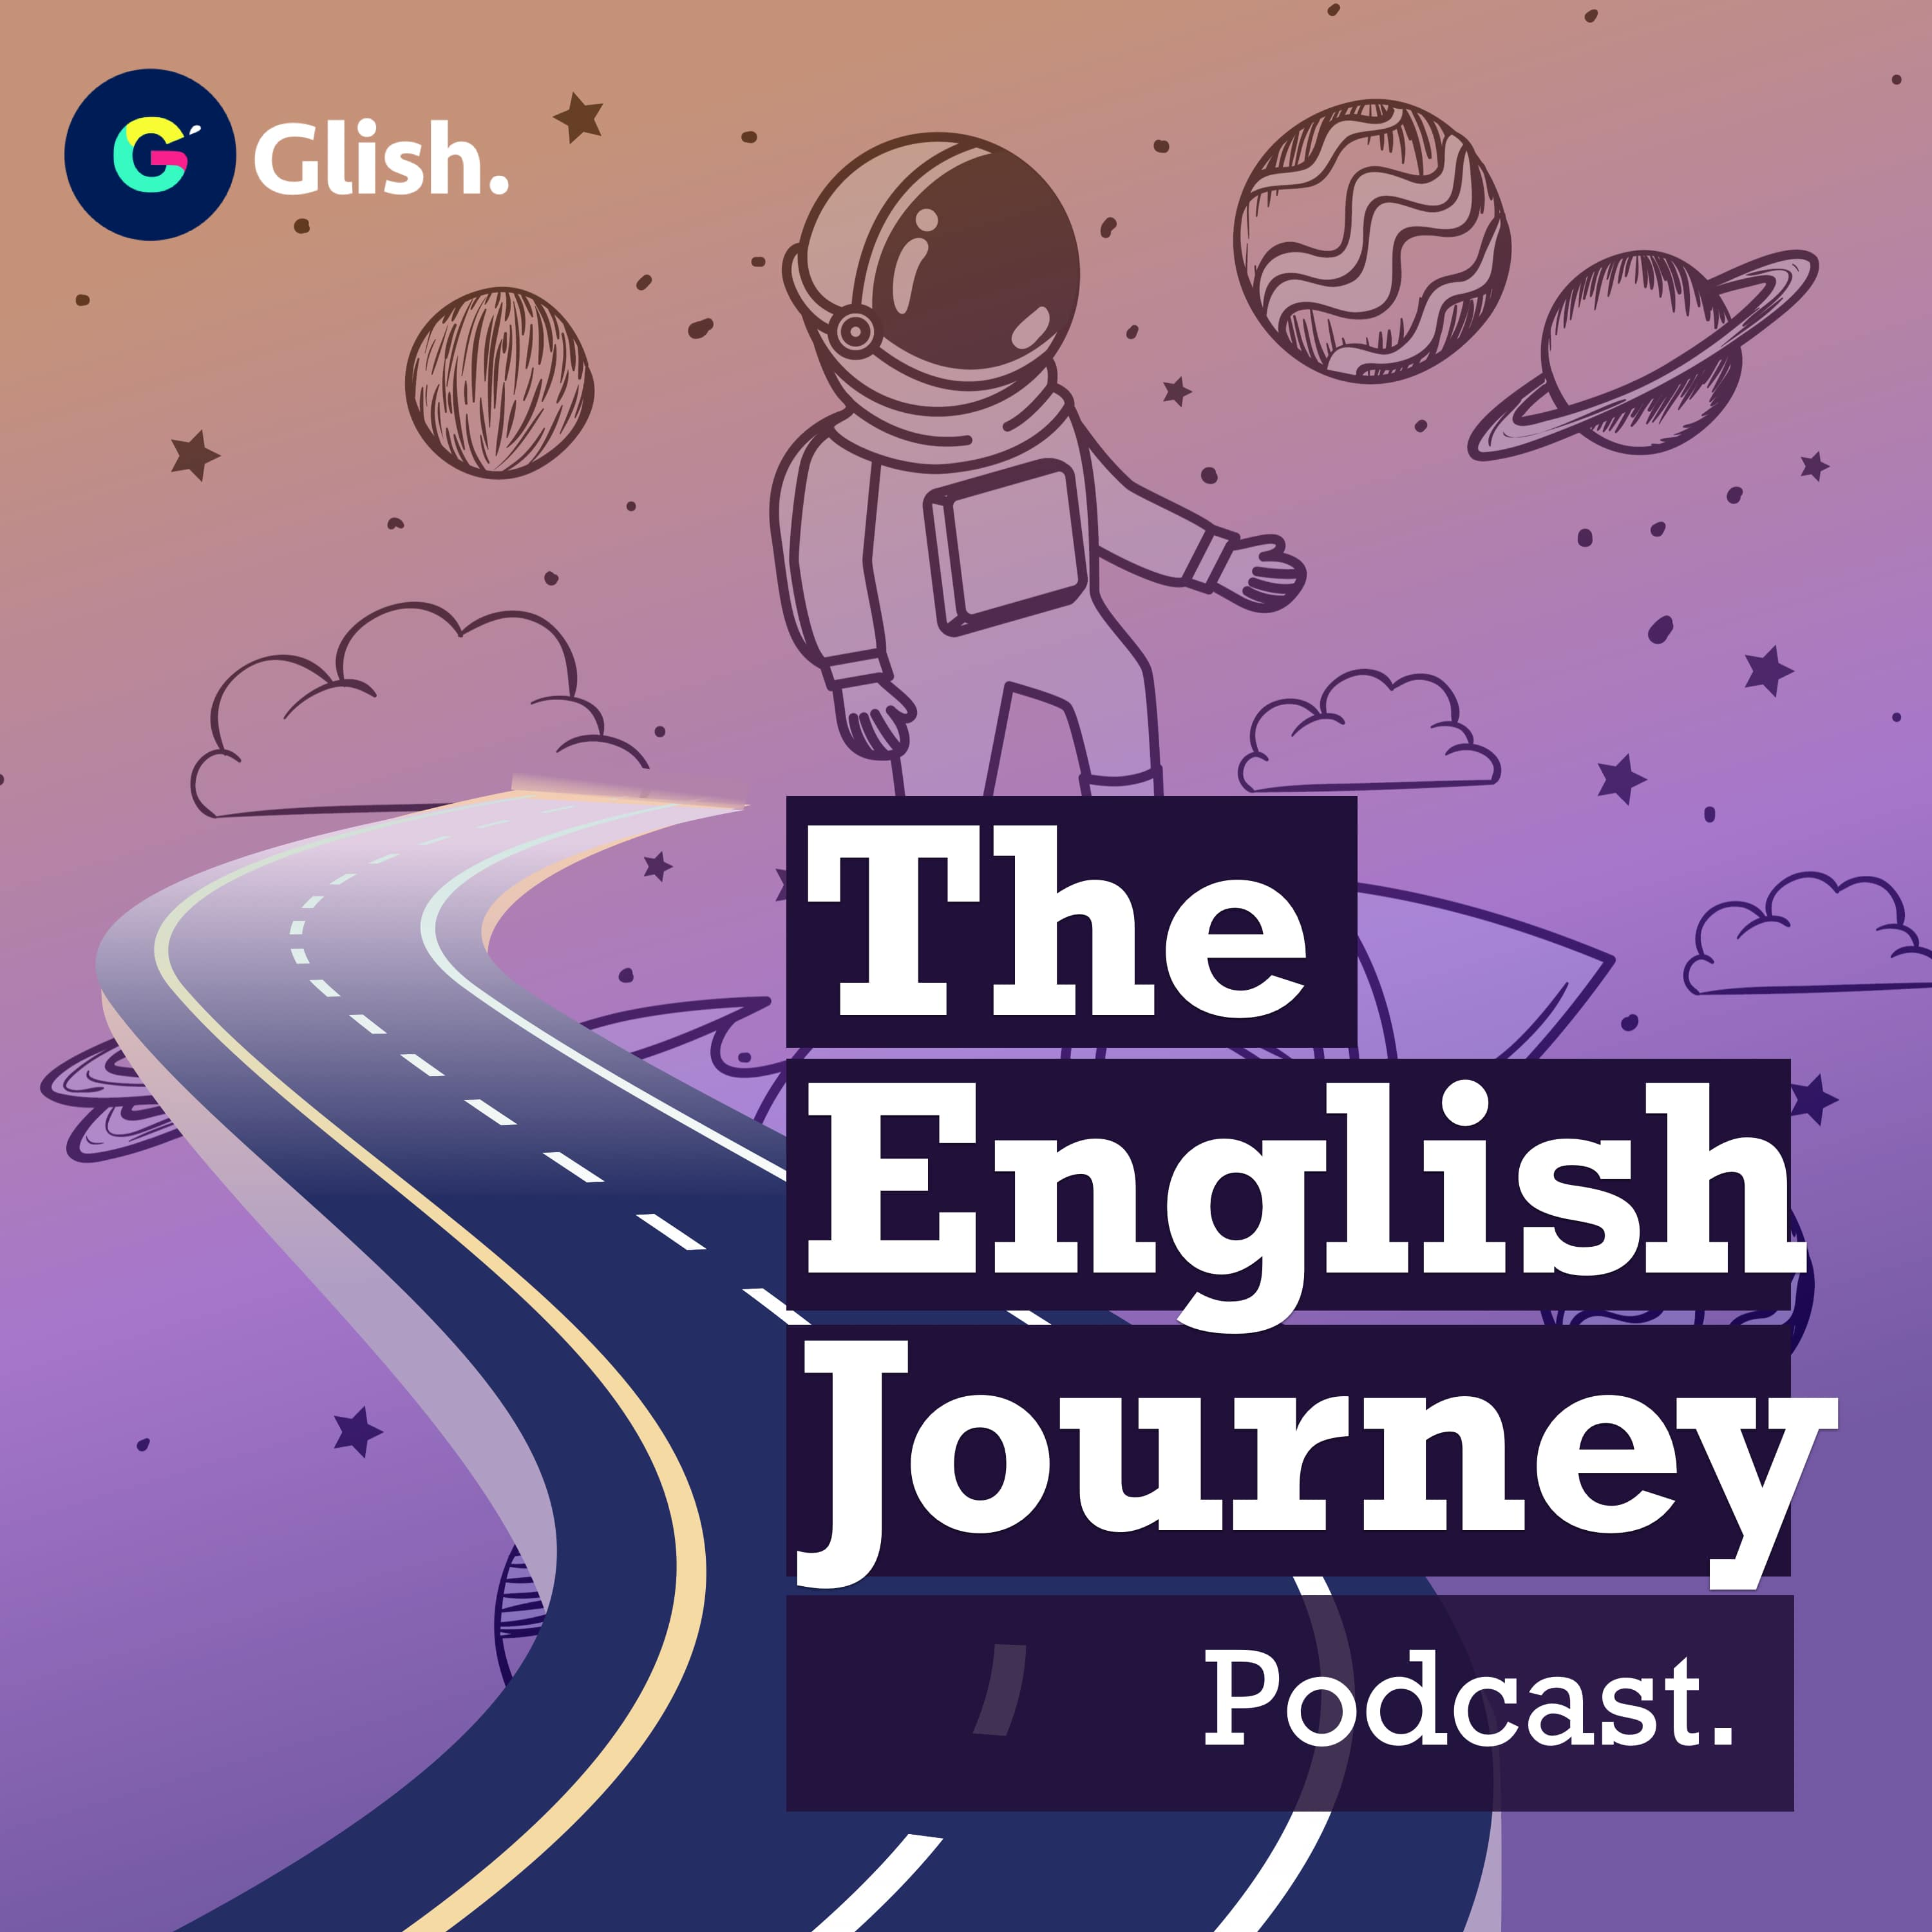 How to Improve Your English Listening, Speaking, Reading and Writing Skills